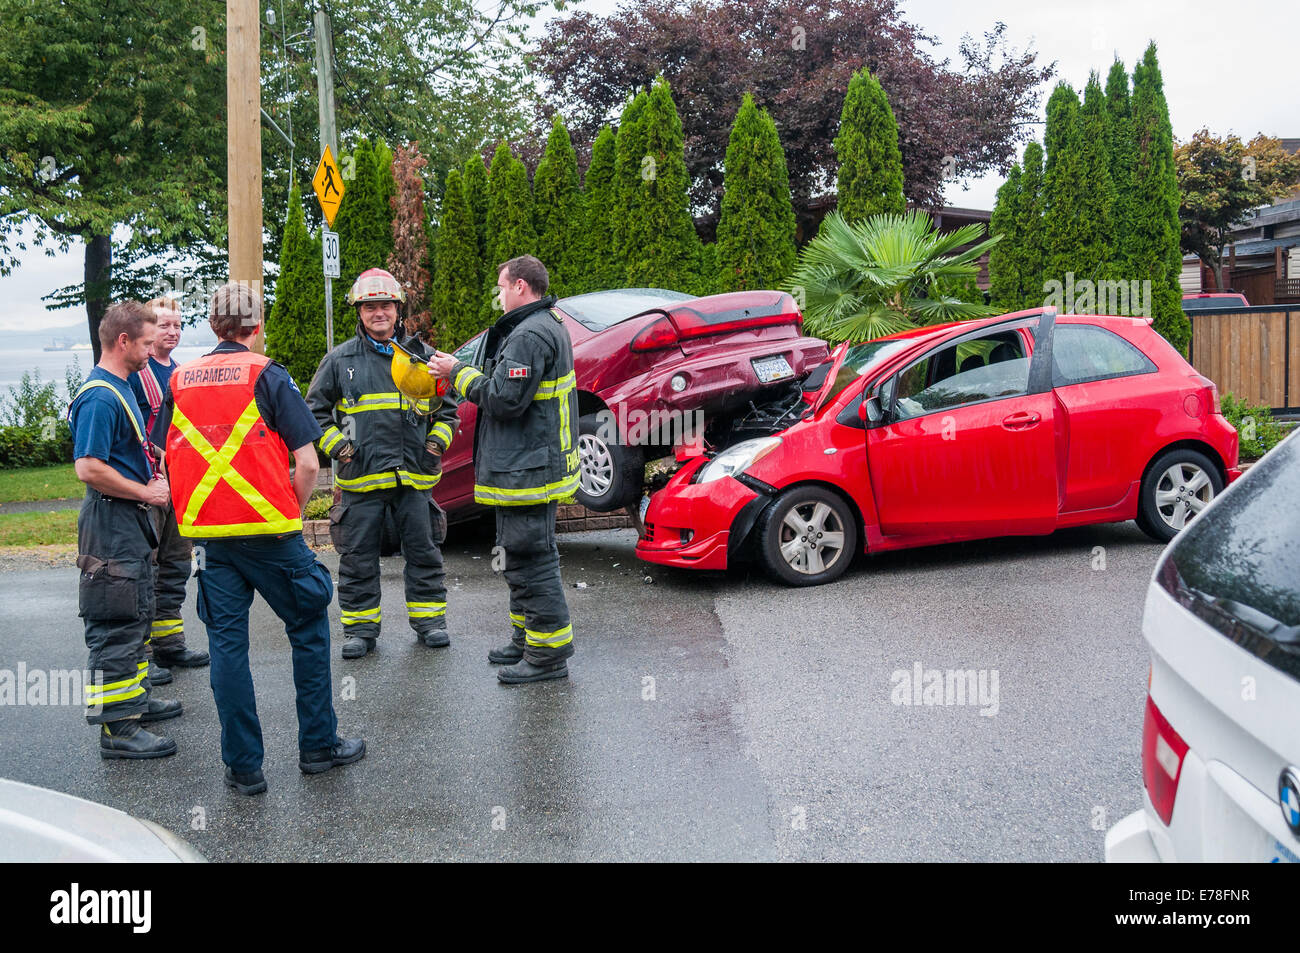 Firemen attend car accident - Stock Image